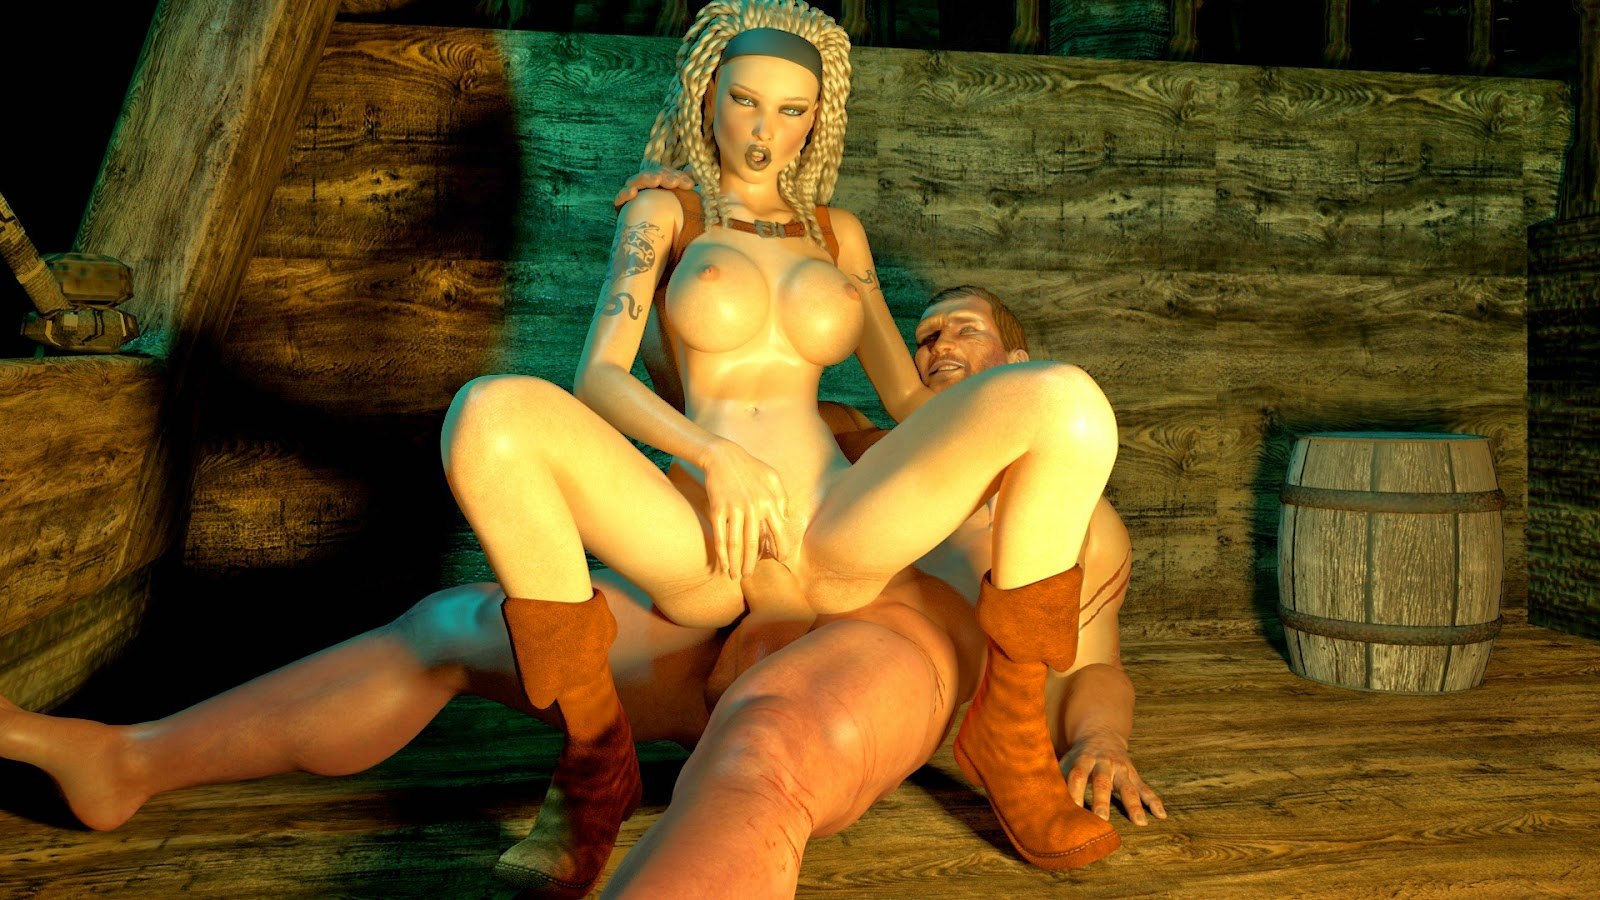 Rpg with nude girls pron pic